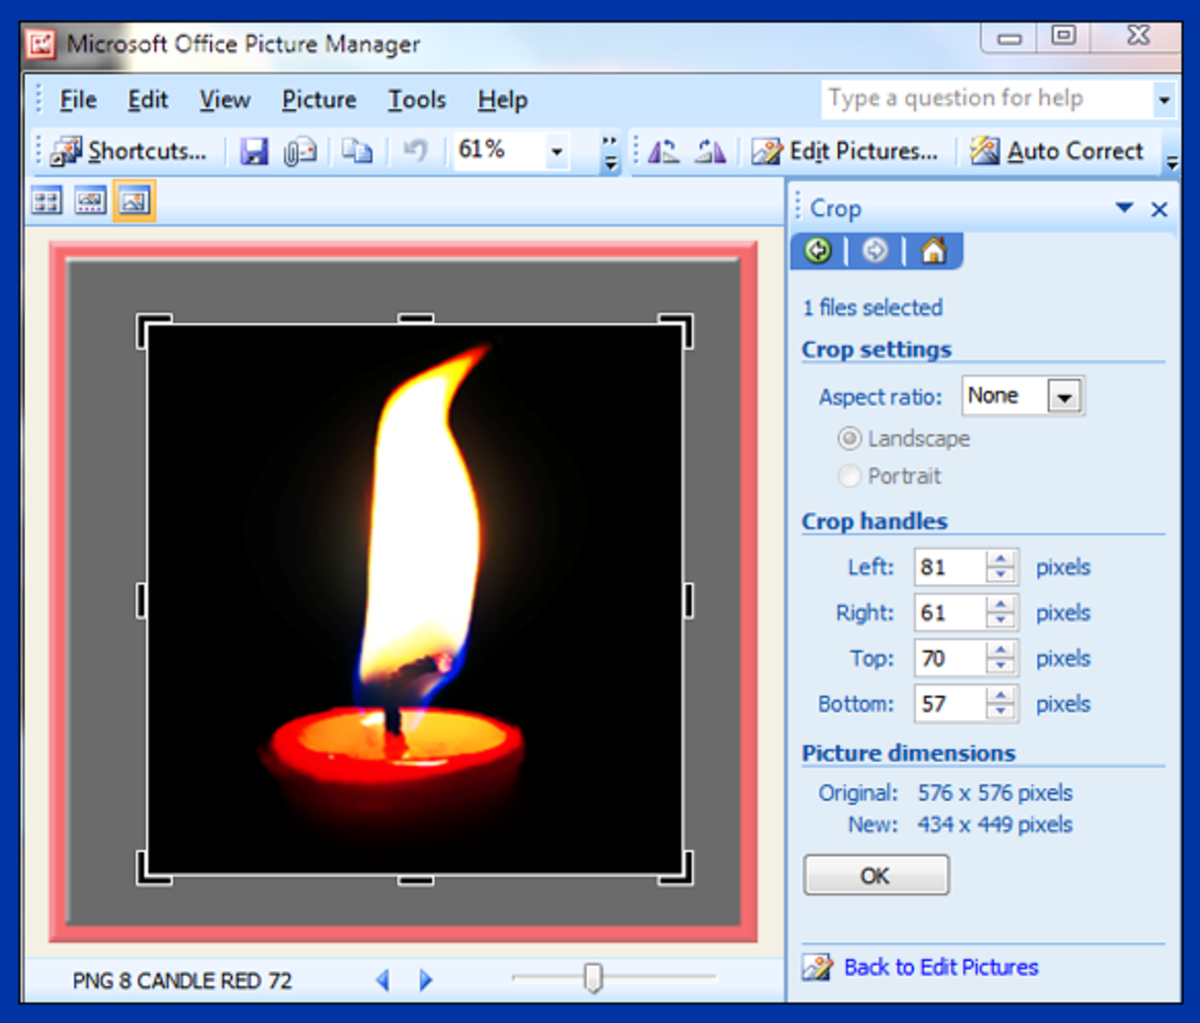 Screenshot 11. Cropping your photo in Microsoft Office Picture Manager